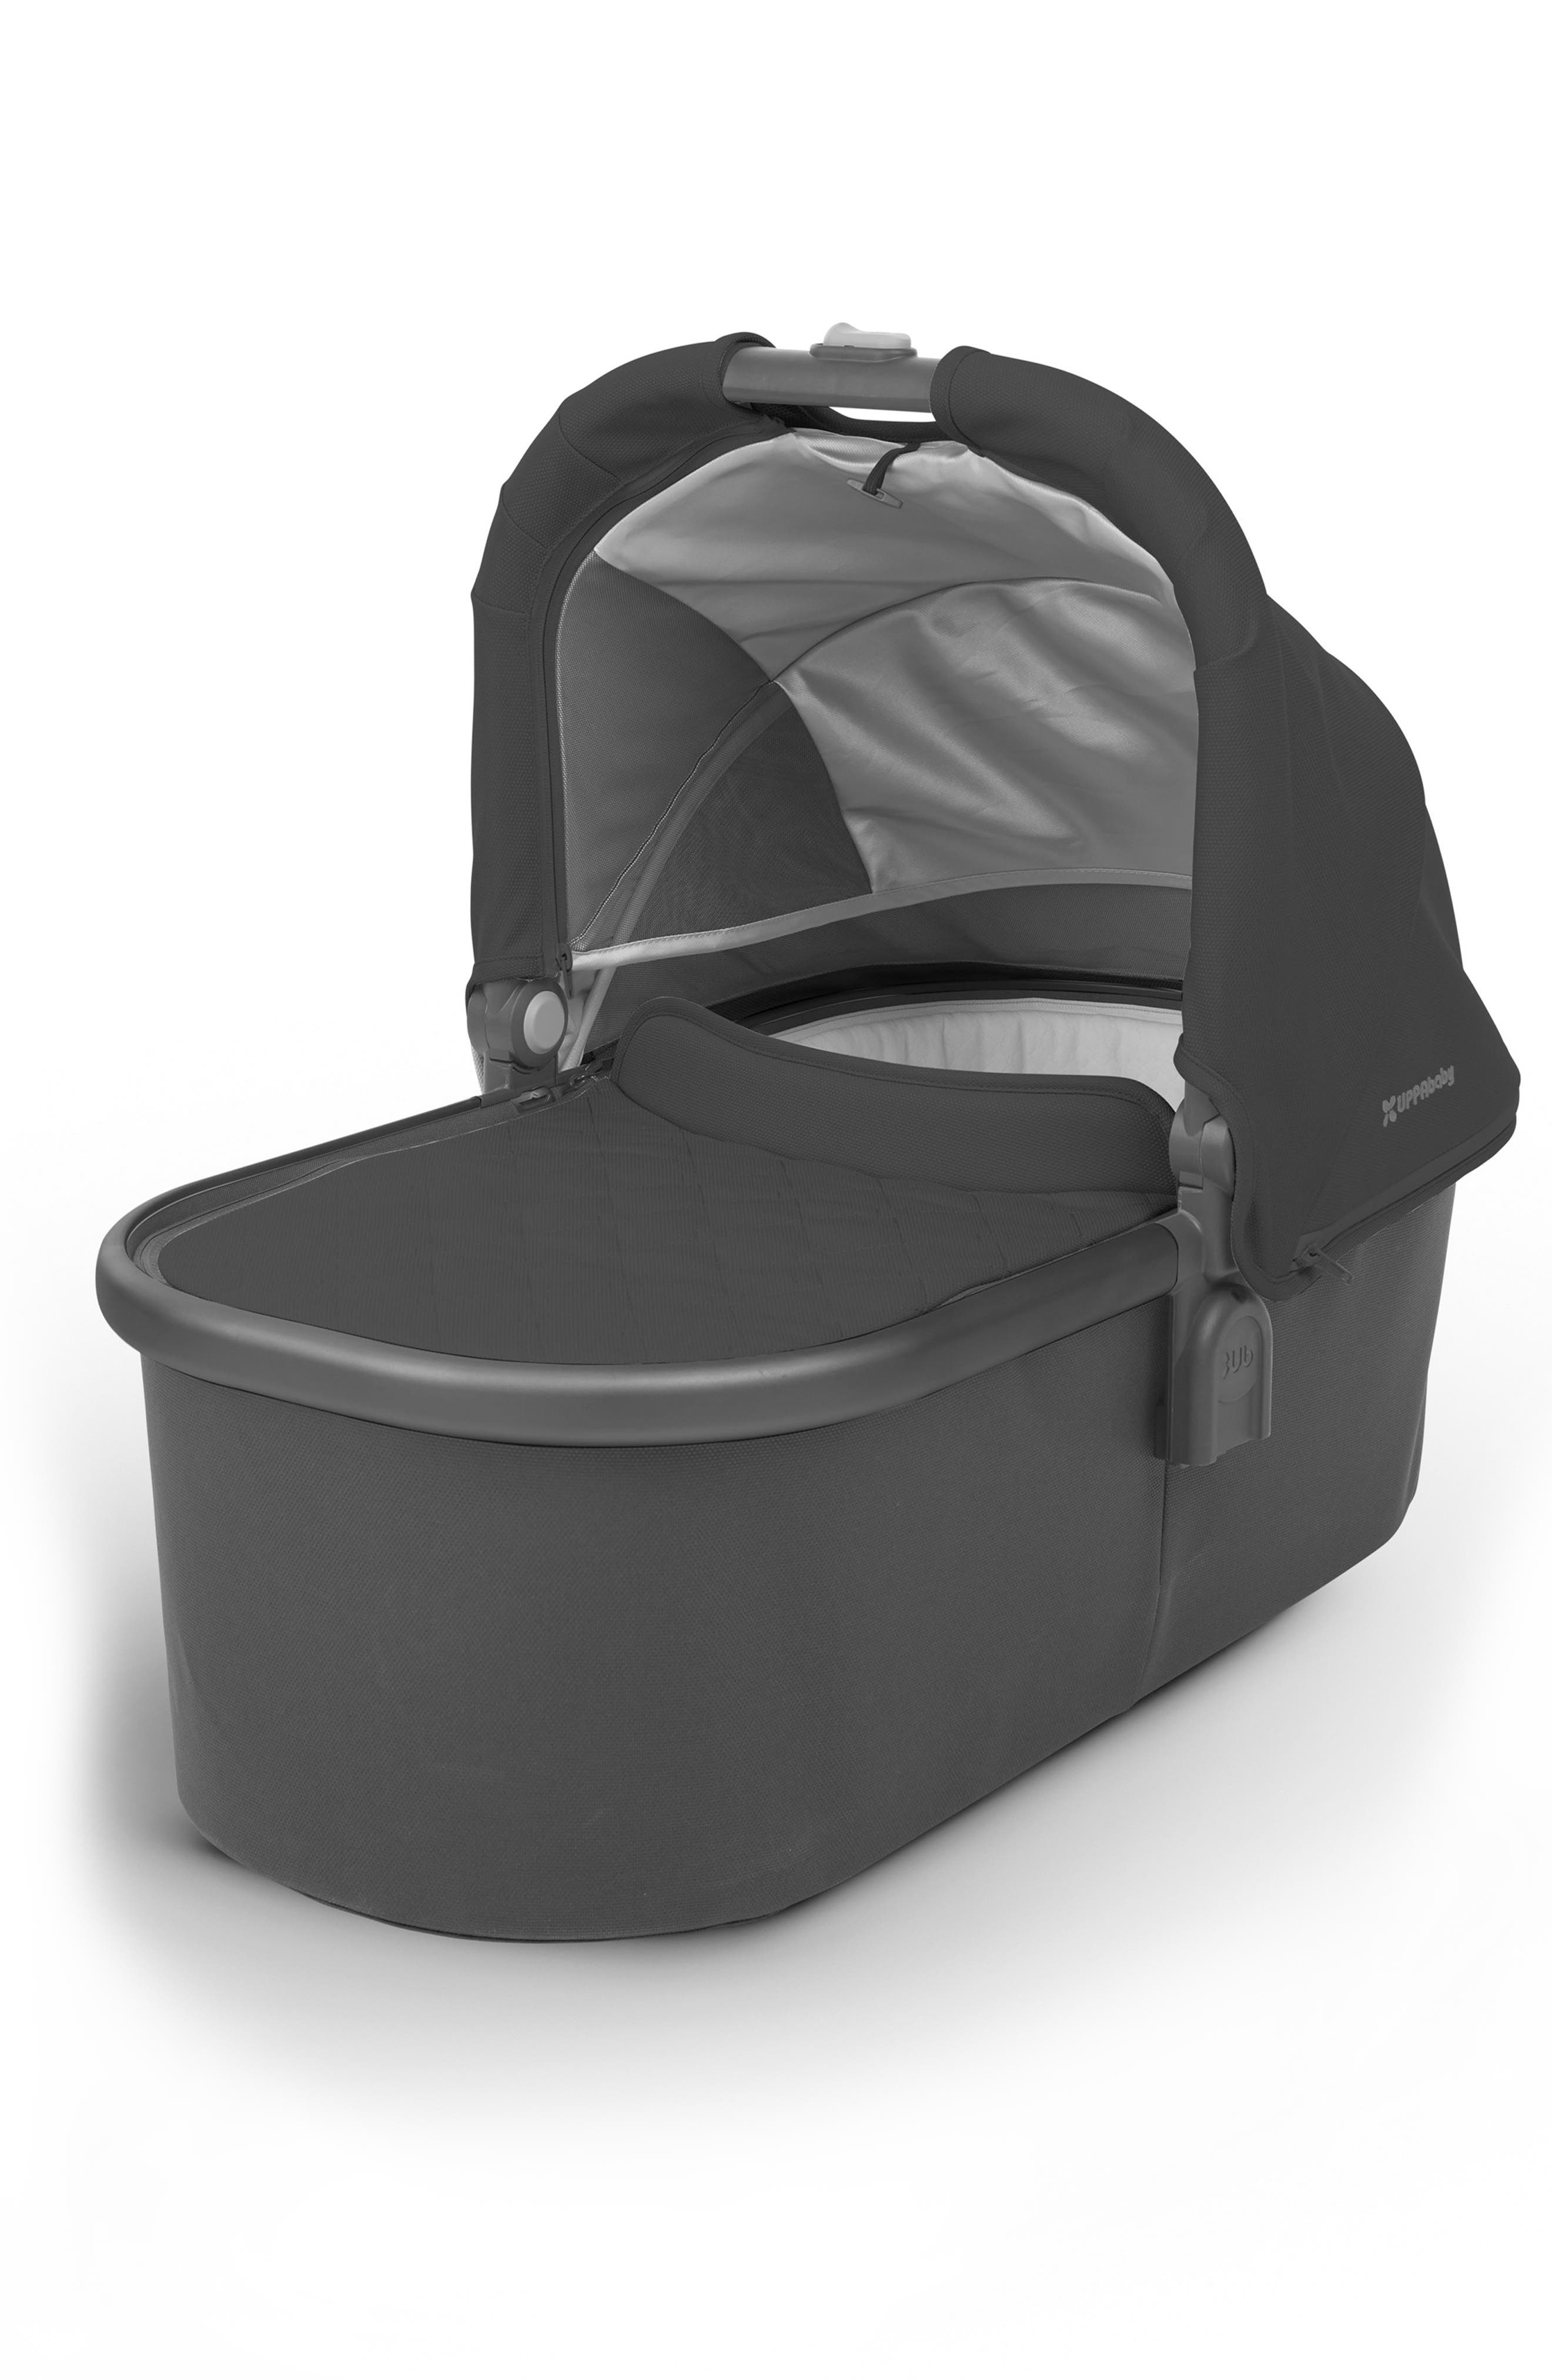 2018 Bassinet for CRUZ or VISTA Strollers,                         Main,                         color, JAKE BLACK/ CARBON